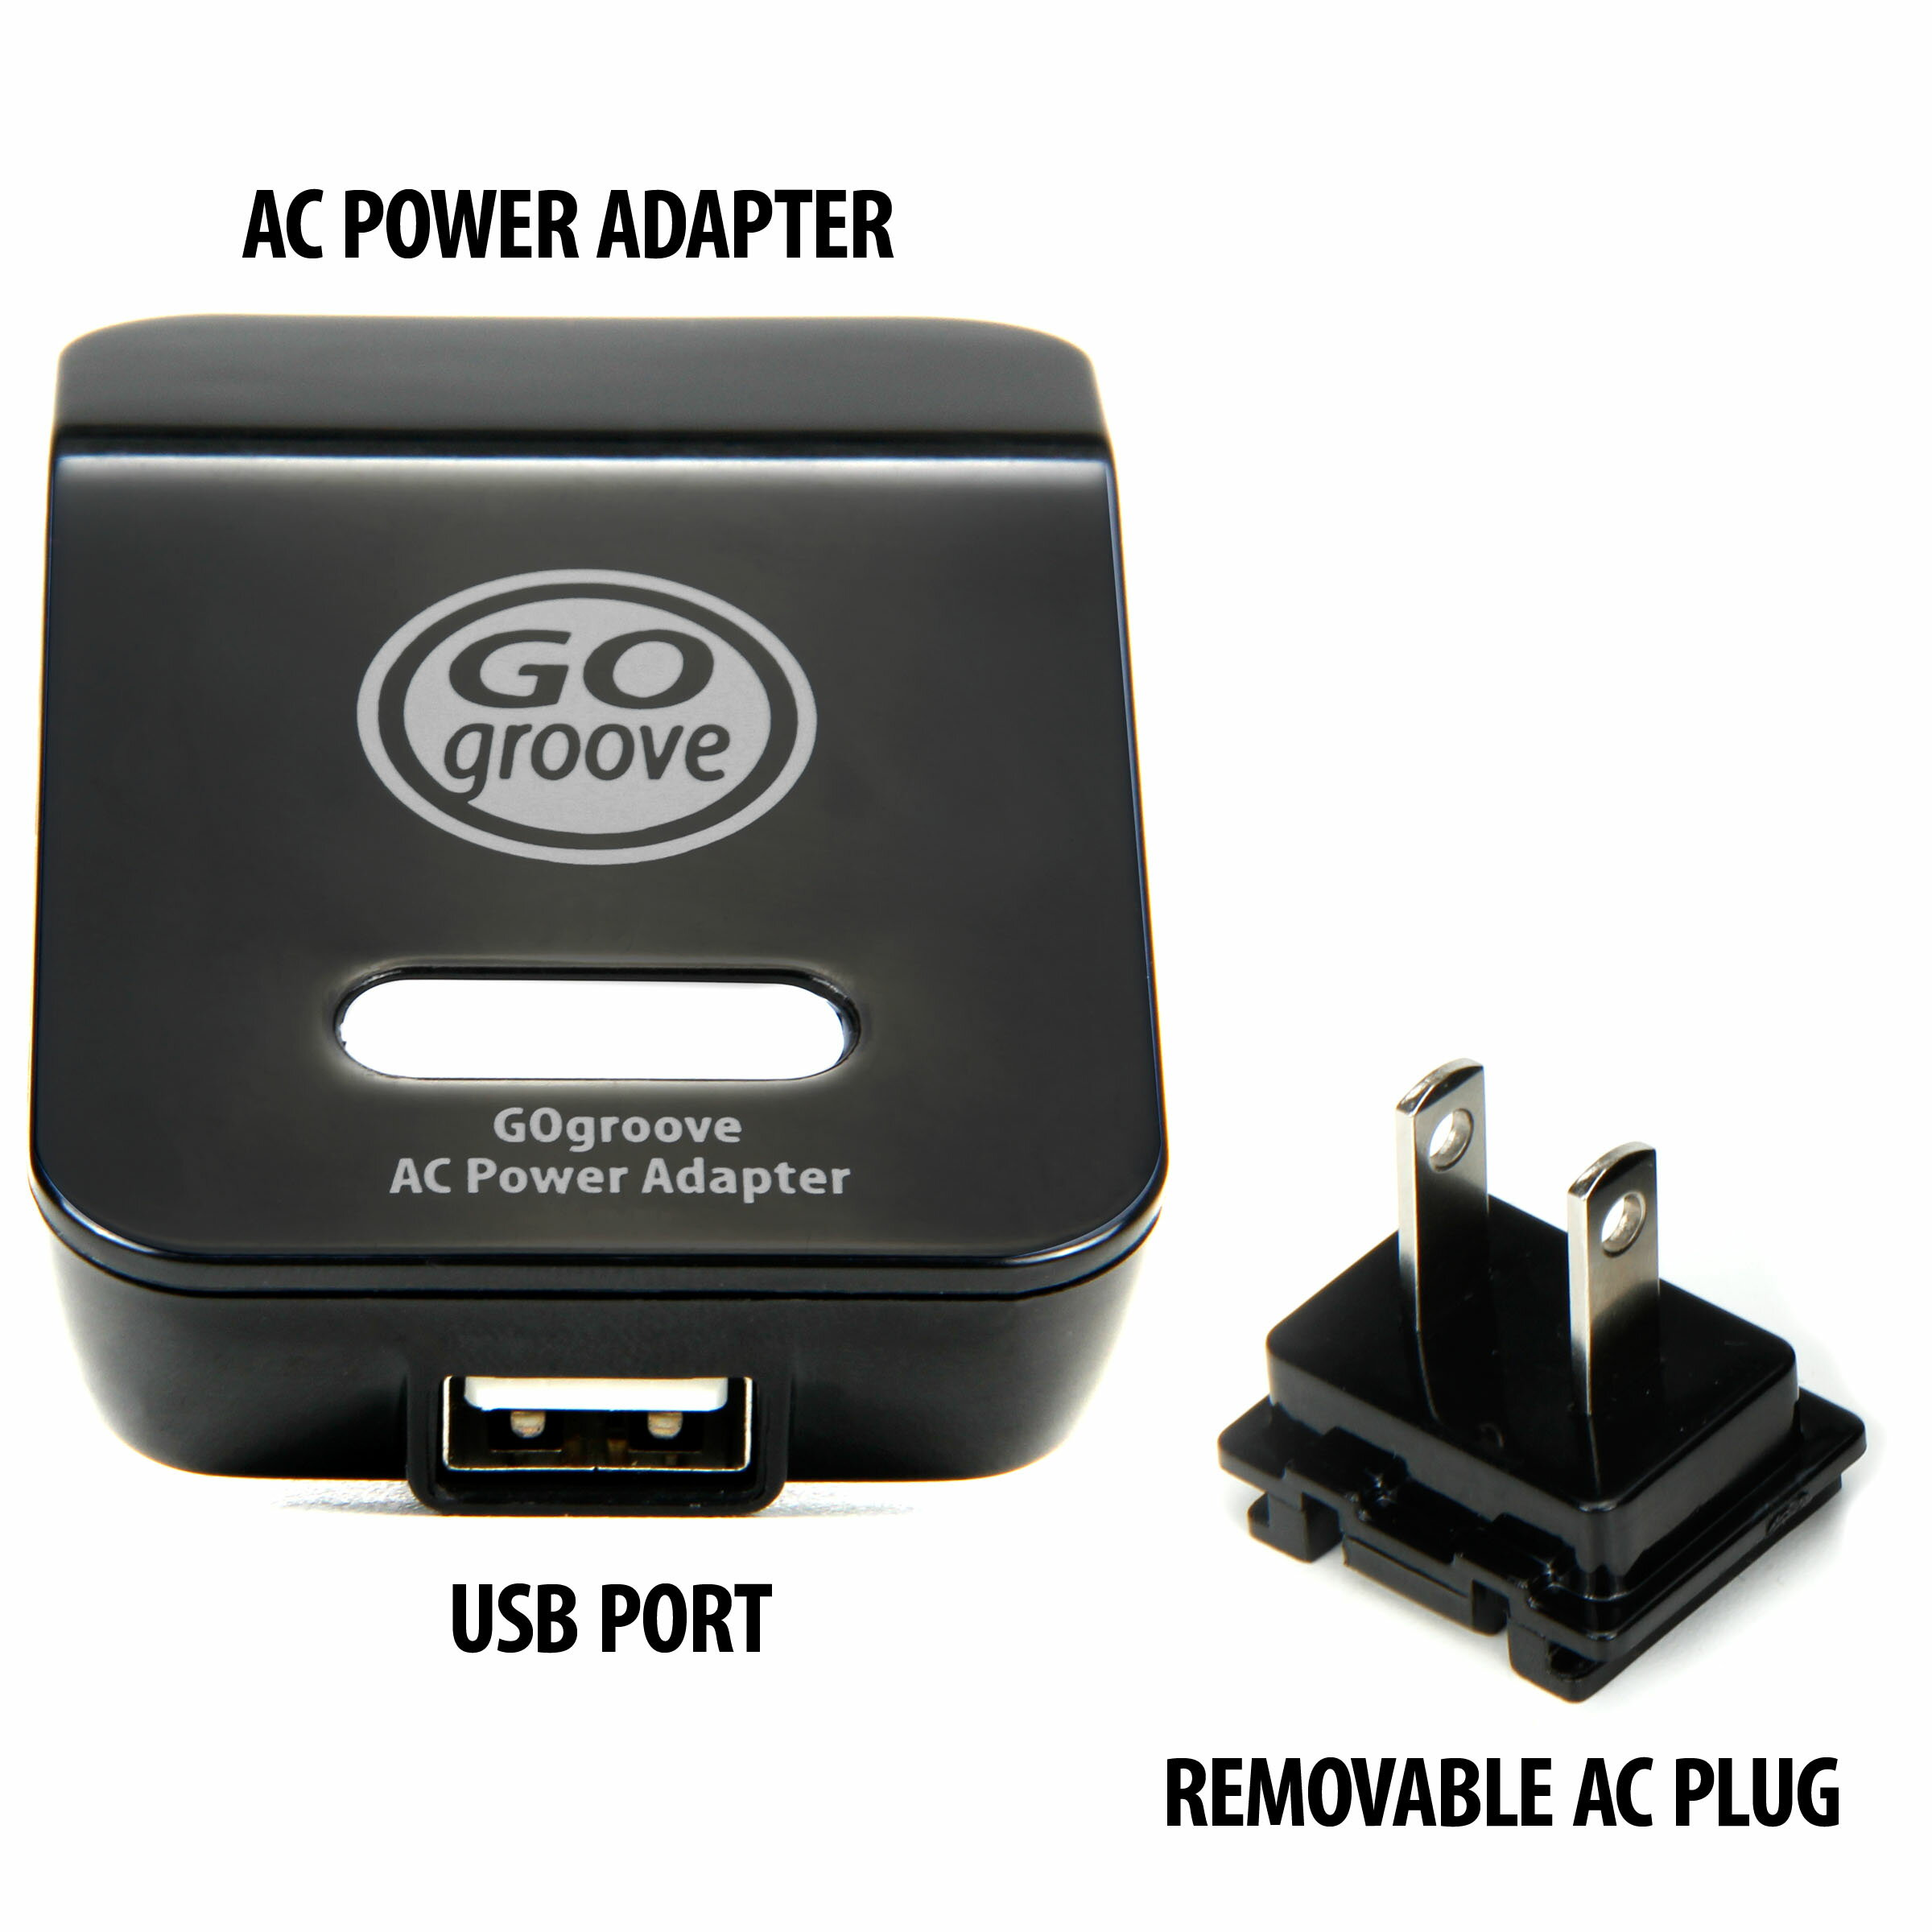 Universal USB Power Adapter Plug by GOgroove for GoPro Hero and more Action Cameras 2